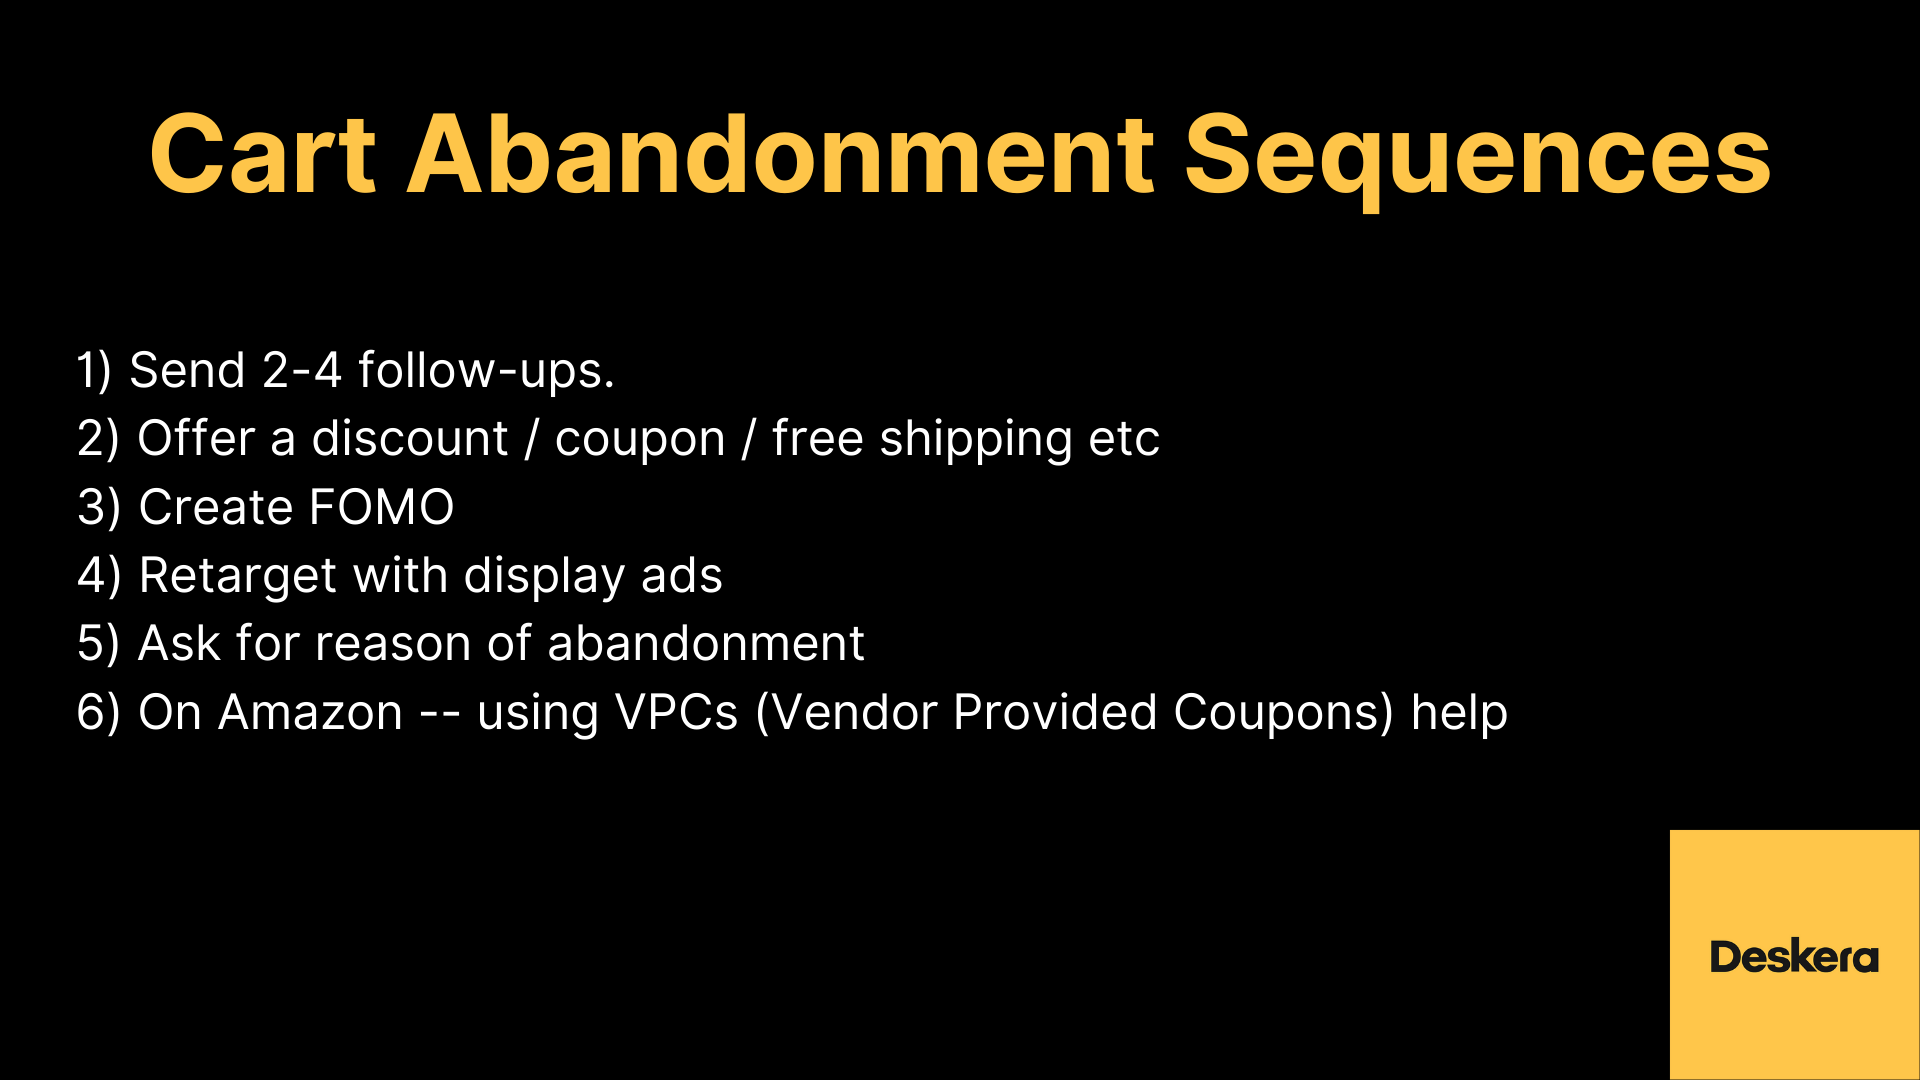 Cart Abandonment Sequences Your eCommerce Business should Follow to Improve its Sales